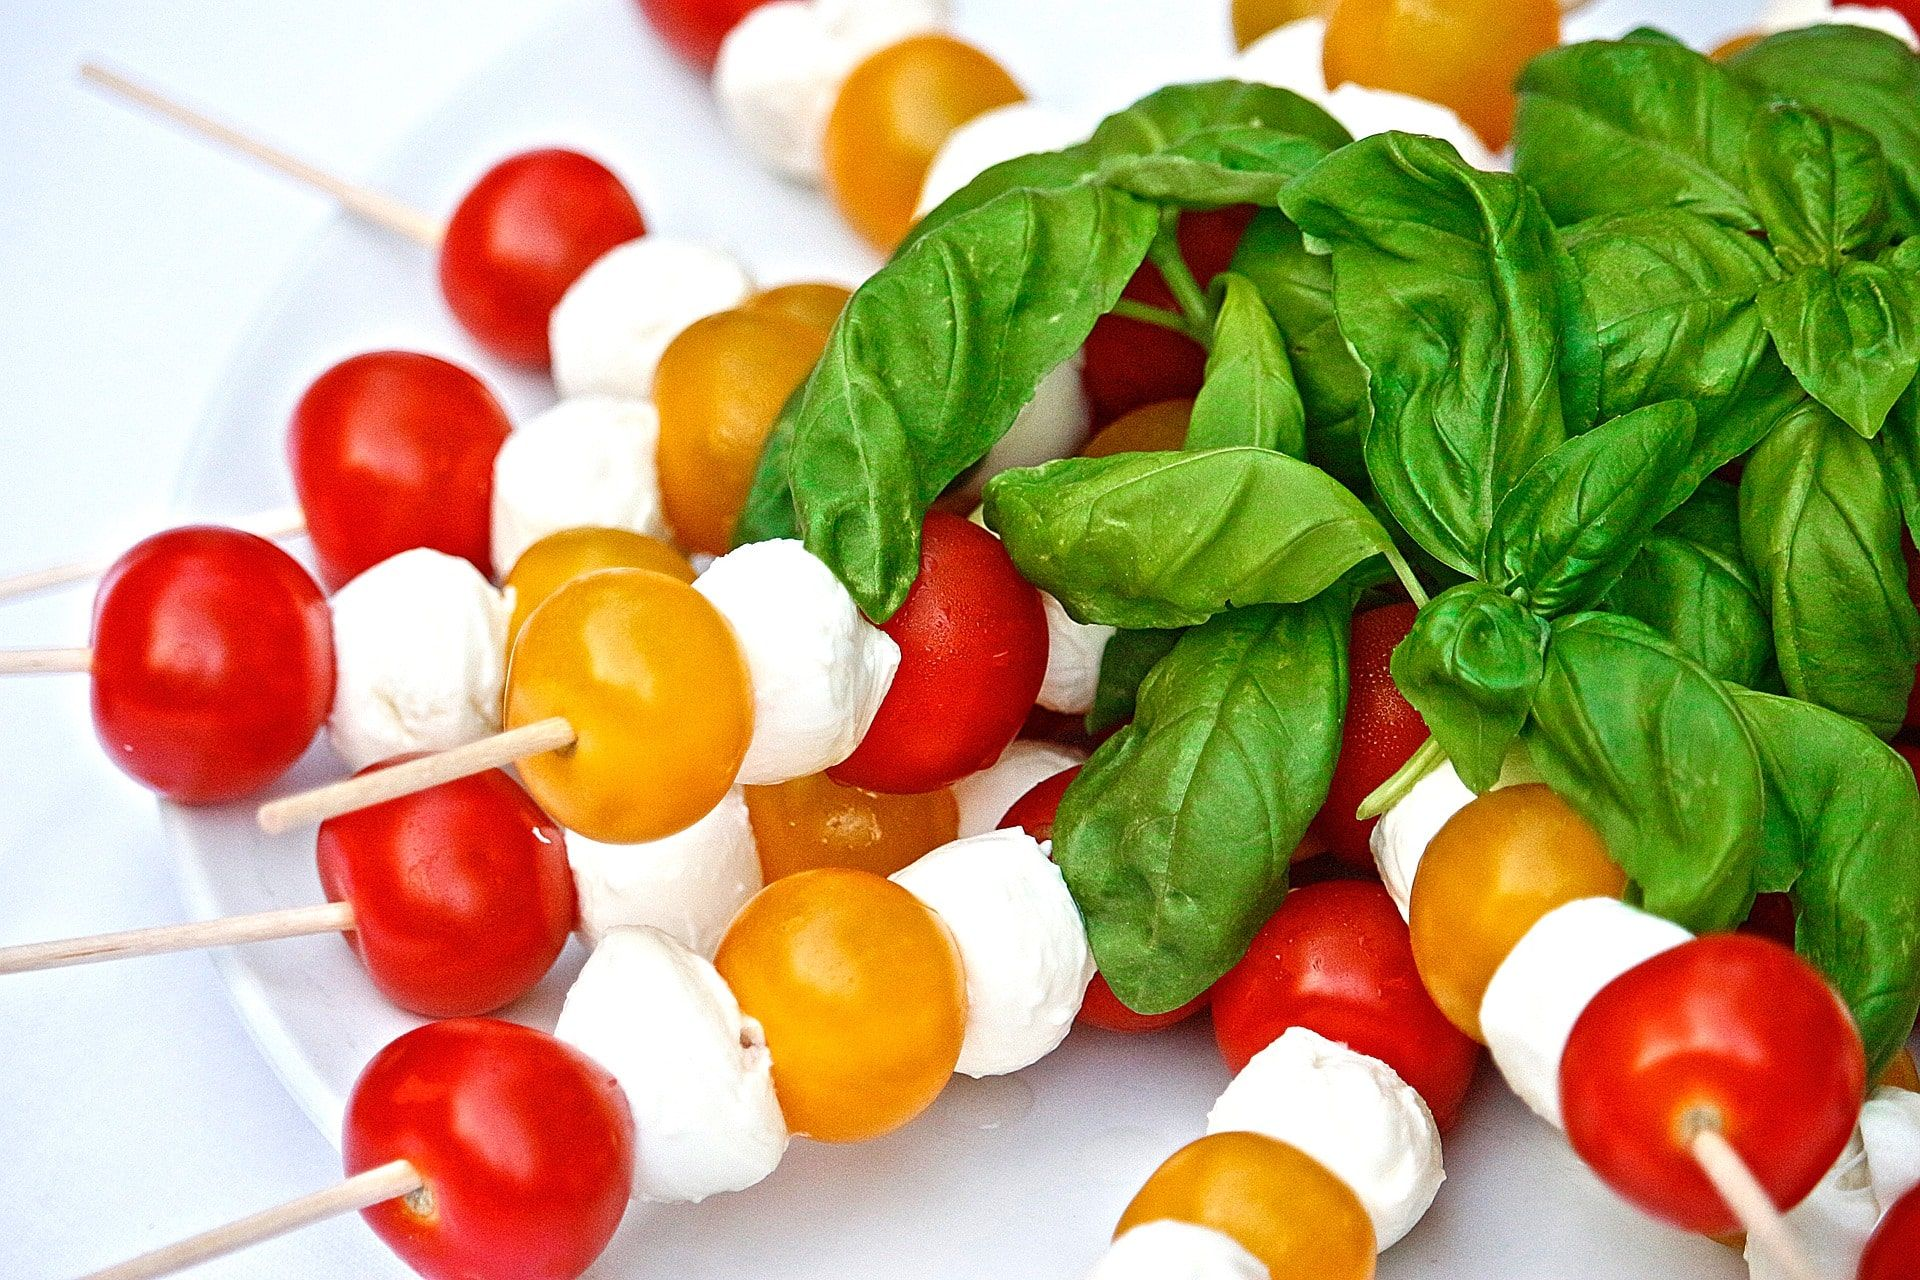 caprese salad - Caprese Salad is an Italian classic and a loved flavour combination, but salads can be a little annoying to take to a picnic, which is why these two recipes are perfect.Tablespoon's Hasselback Tomato Caprese means you can get a mouthful of tomato, mozzarella and basil with every bite, they can also be eaten with your fingers so no need for knives and forks! You could size these down with smaller ingredients to make them easier for children.Another easy and simple way to have a Caprese salad is to put them on skewers! This recipe from Good Housekeeping gives all the ingredients you will need.*Image shown is not from the recipes provided.